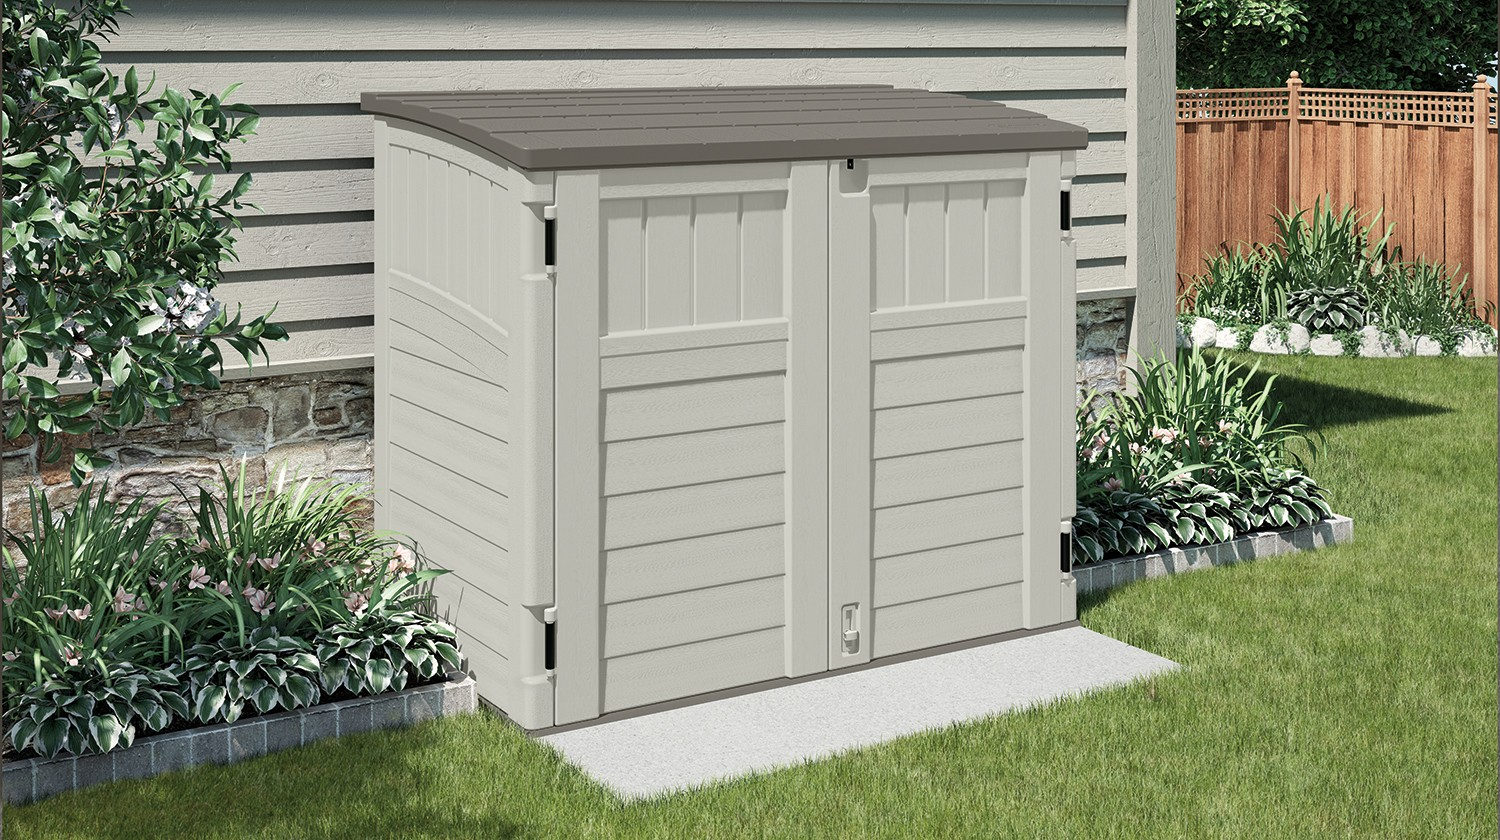 Outdoor Sheds for Sale | Rubbermaid Storage Sheds | Rubbermaid Outdoor Storage